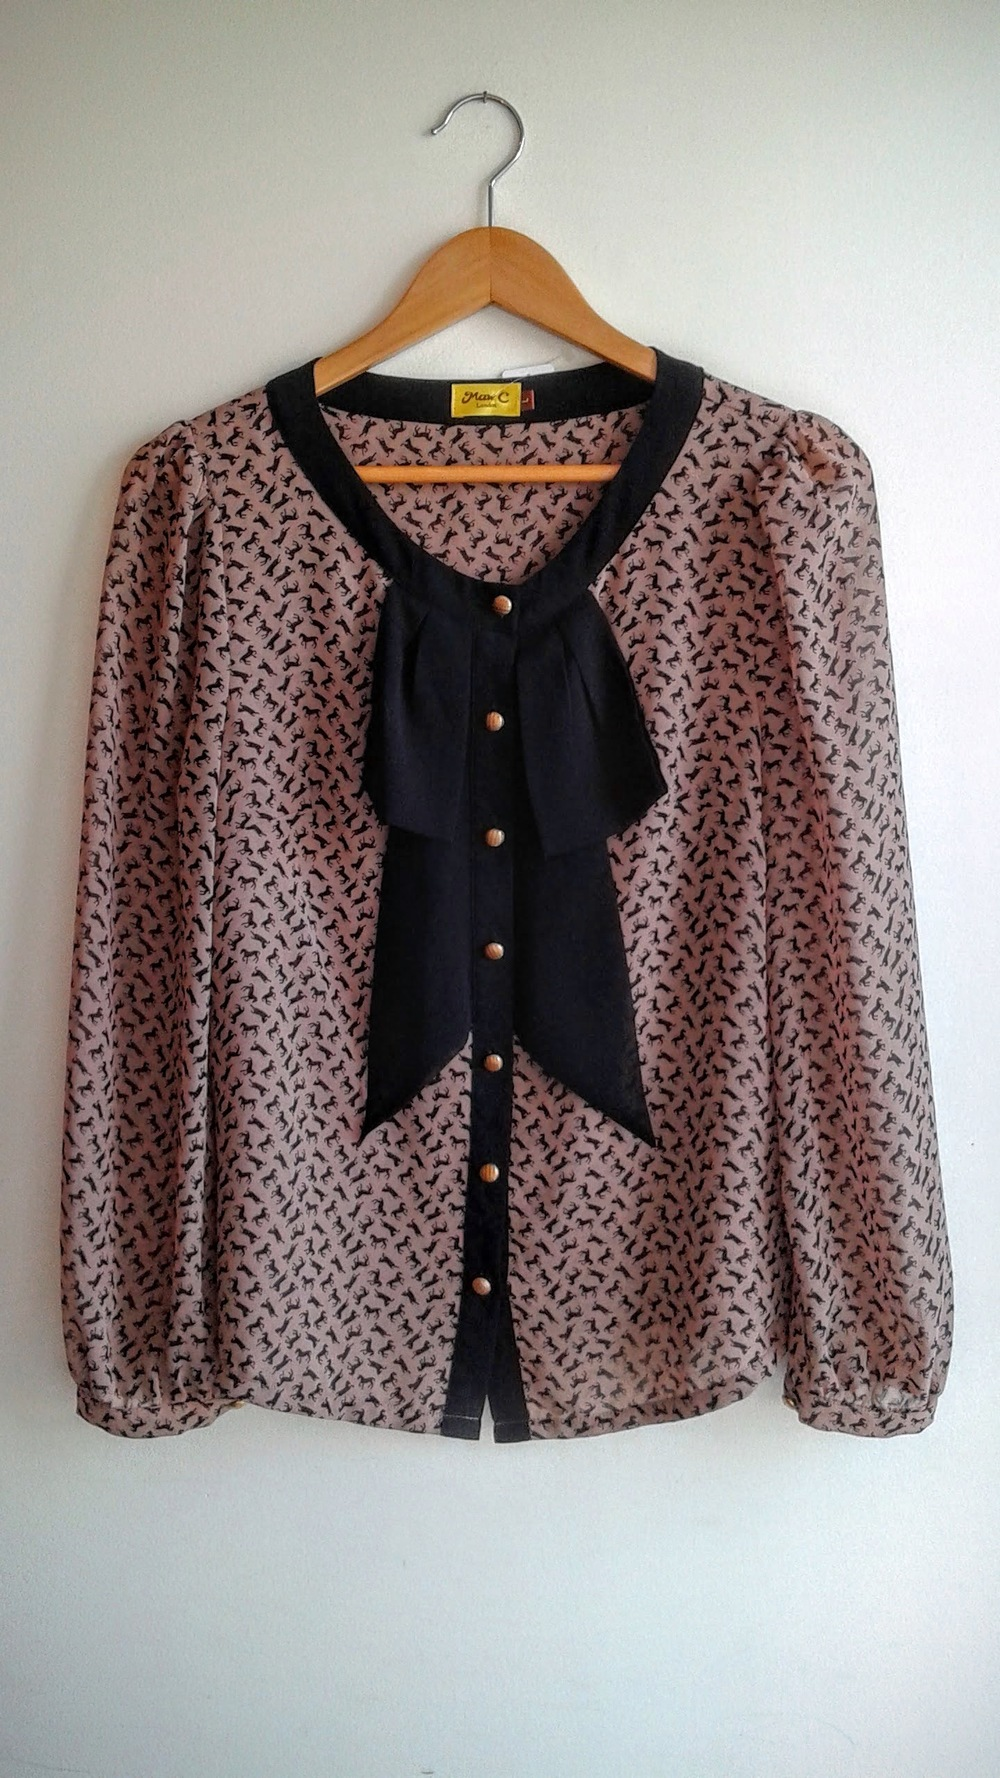 Max C London top; Size L, $26